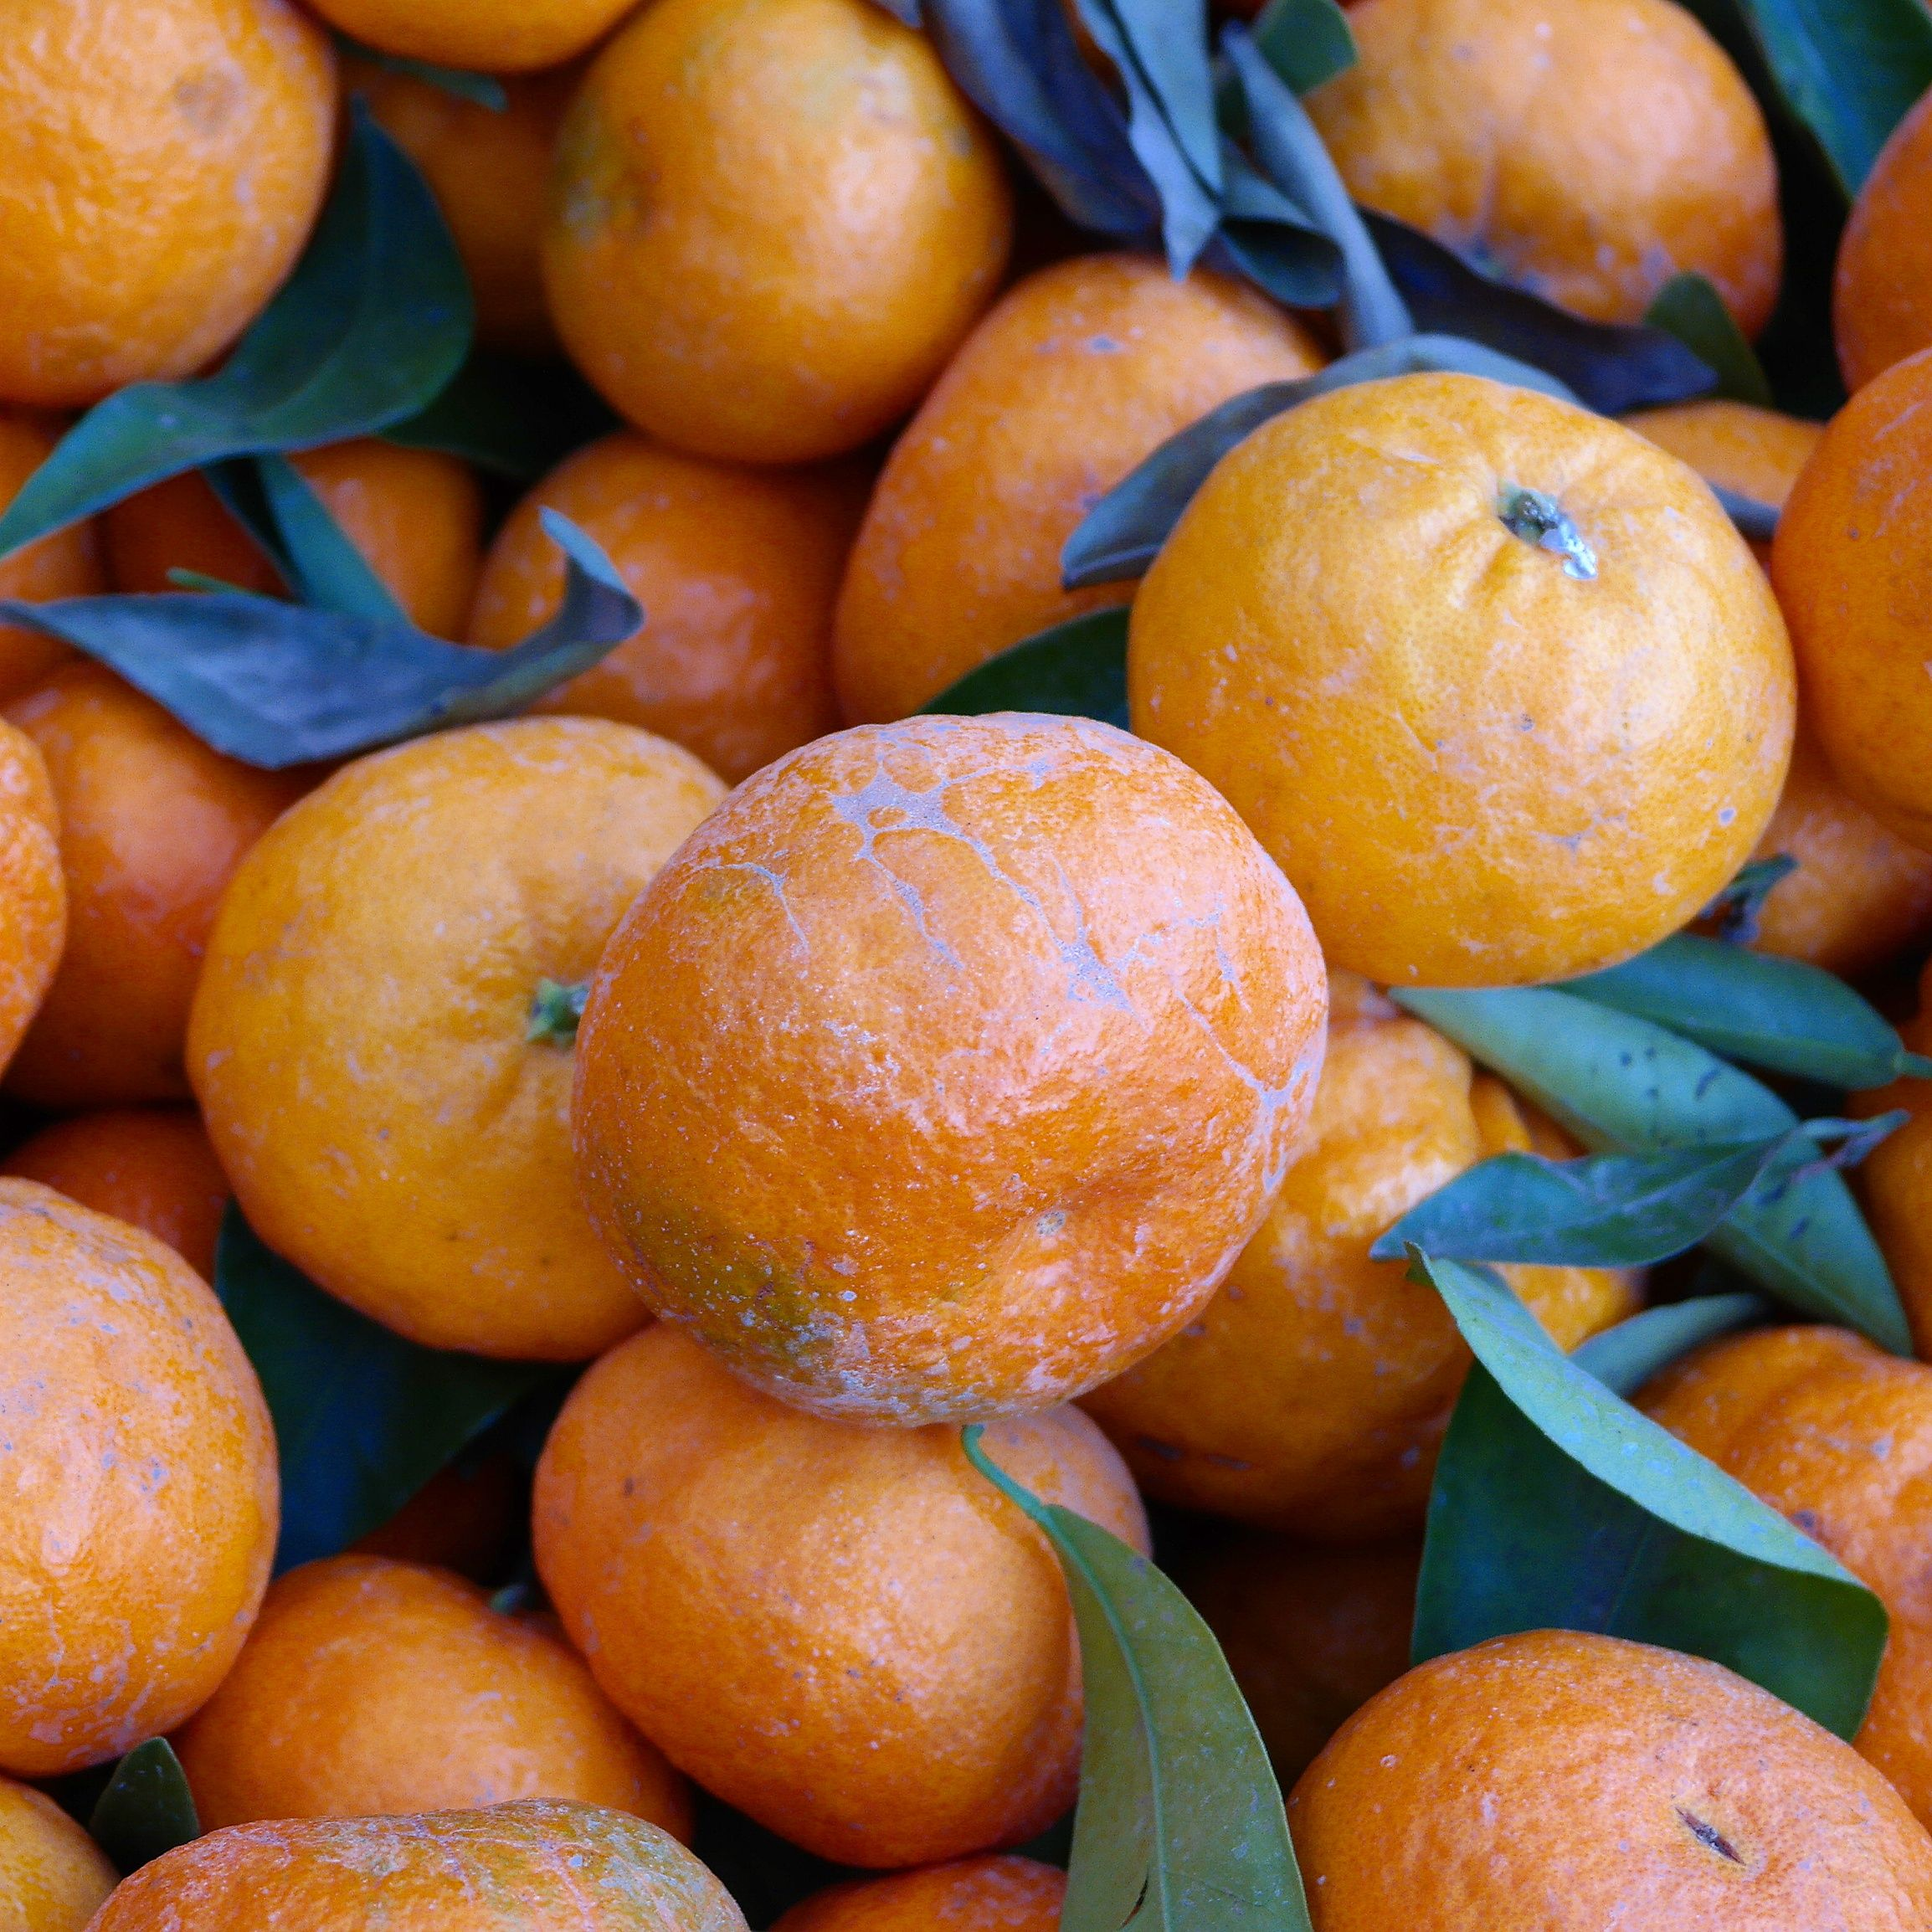 Golden Nugget Mandarins Gold Nugget Is A Recently Released Mandarin Variety Developed Within The Universi Orange Rind Fruit University Of California Riverside